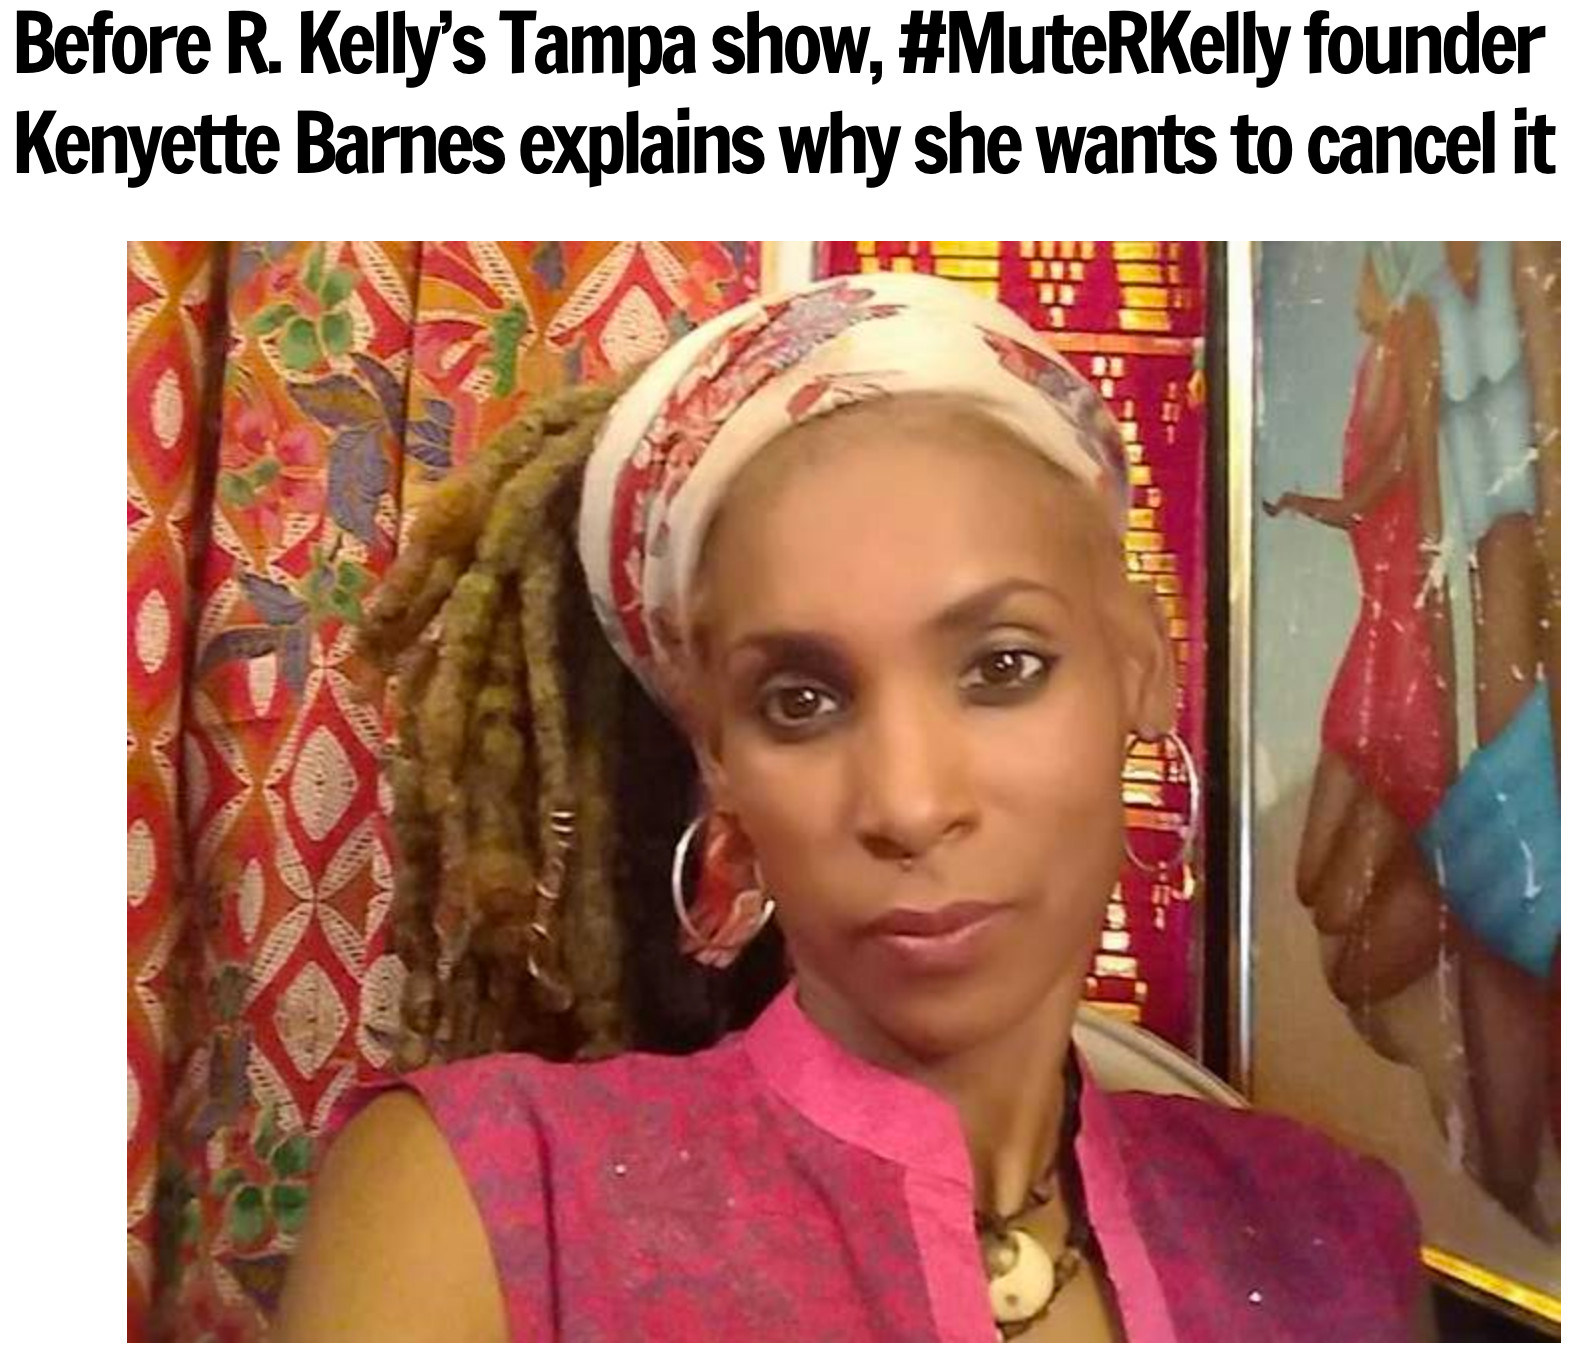 c765ec3b3 Before R. Kelly's Tampa show, #MuteRKelly founder Kenyette Barnes explains  why she wants